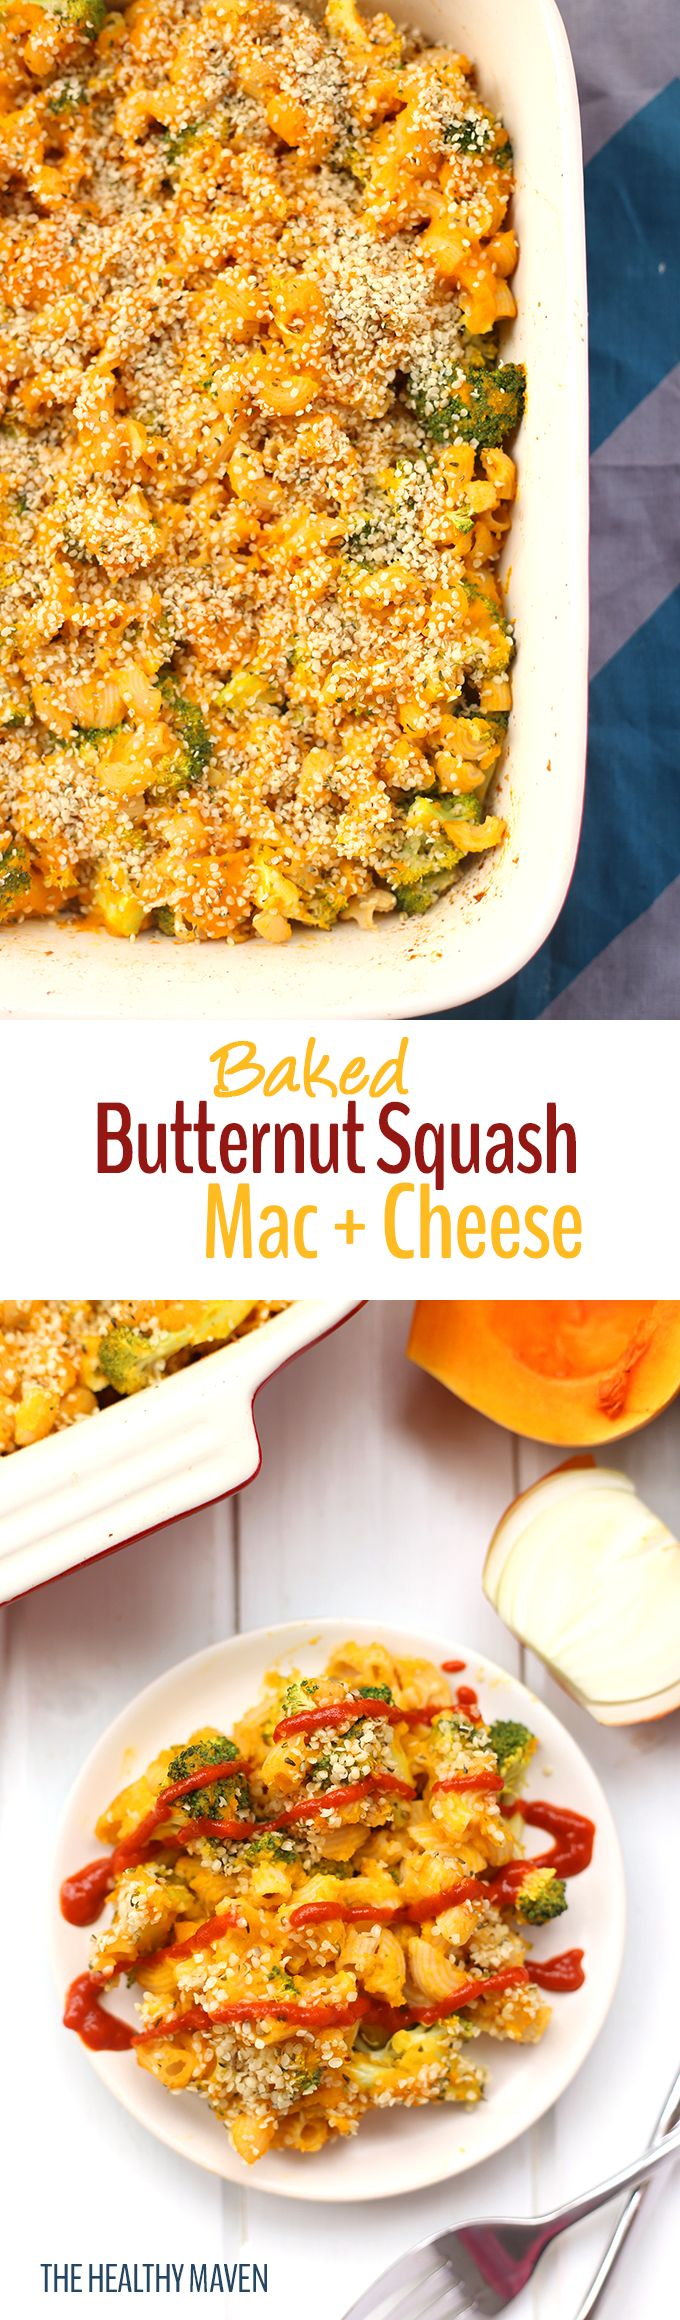 "Ditch the dairy with this vegan Baked Butternut Squash Mac and Cheese Recipe! It's made with gluten-free noodles, a health-kick from broccoli and a fake-out ""cheese"" sauce made from butternut squash and cashew milk! #meatlessmondaynight"